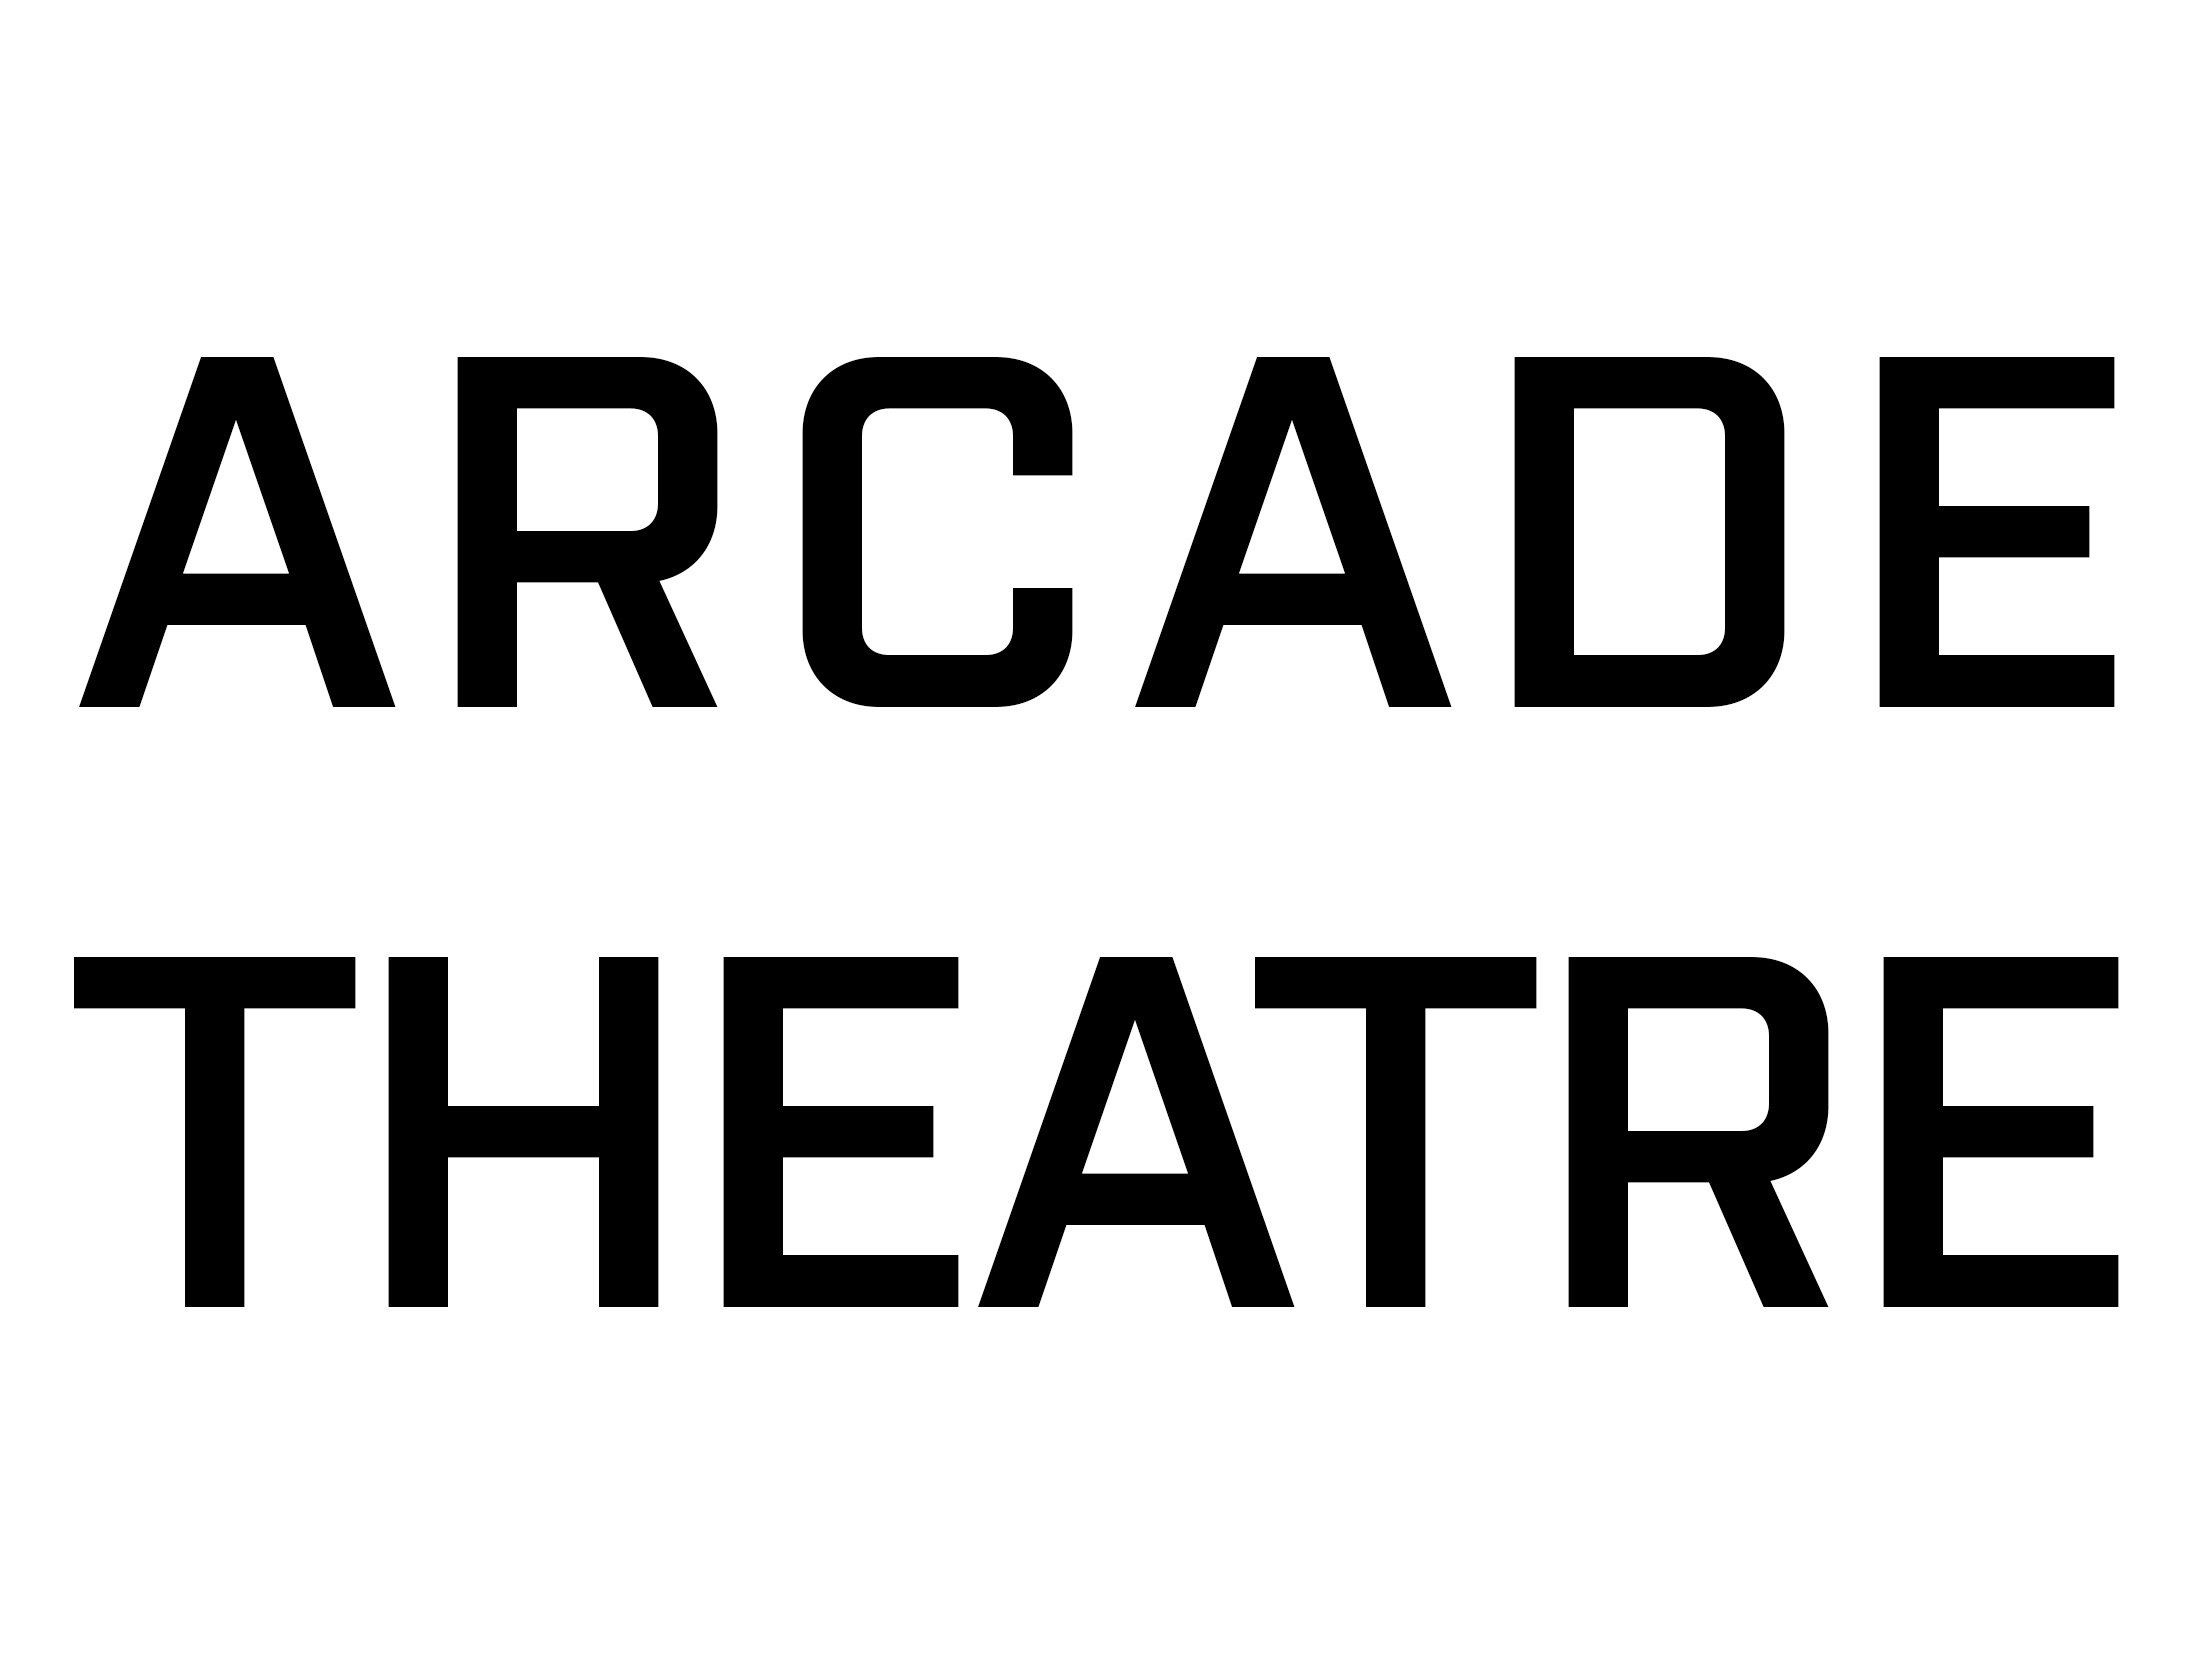 ARCADE THEATRE.BEST.jpeg